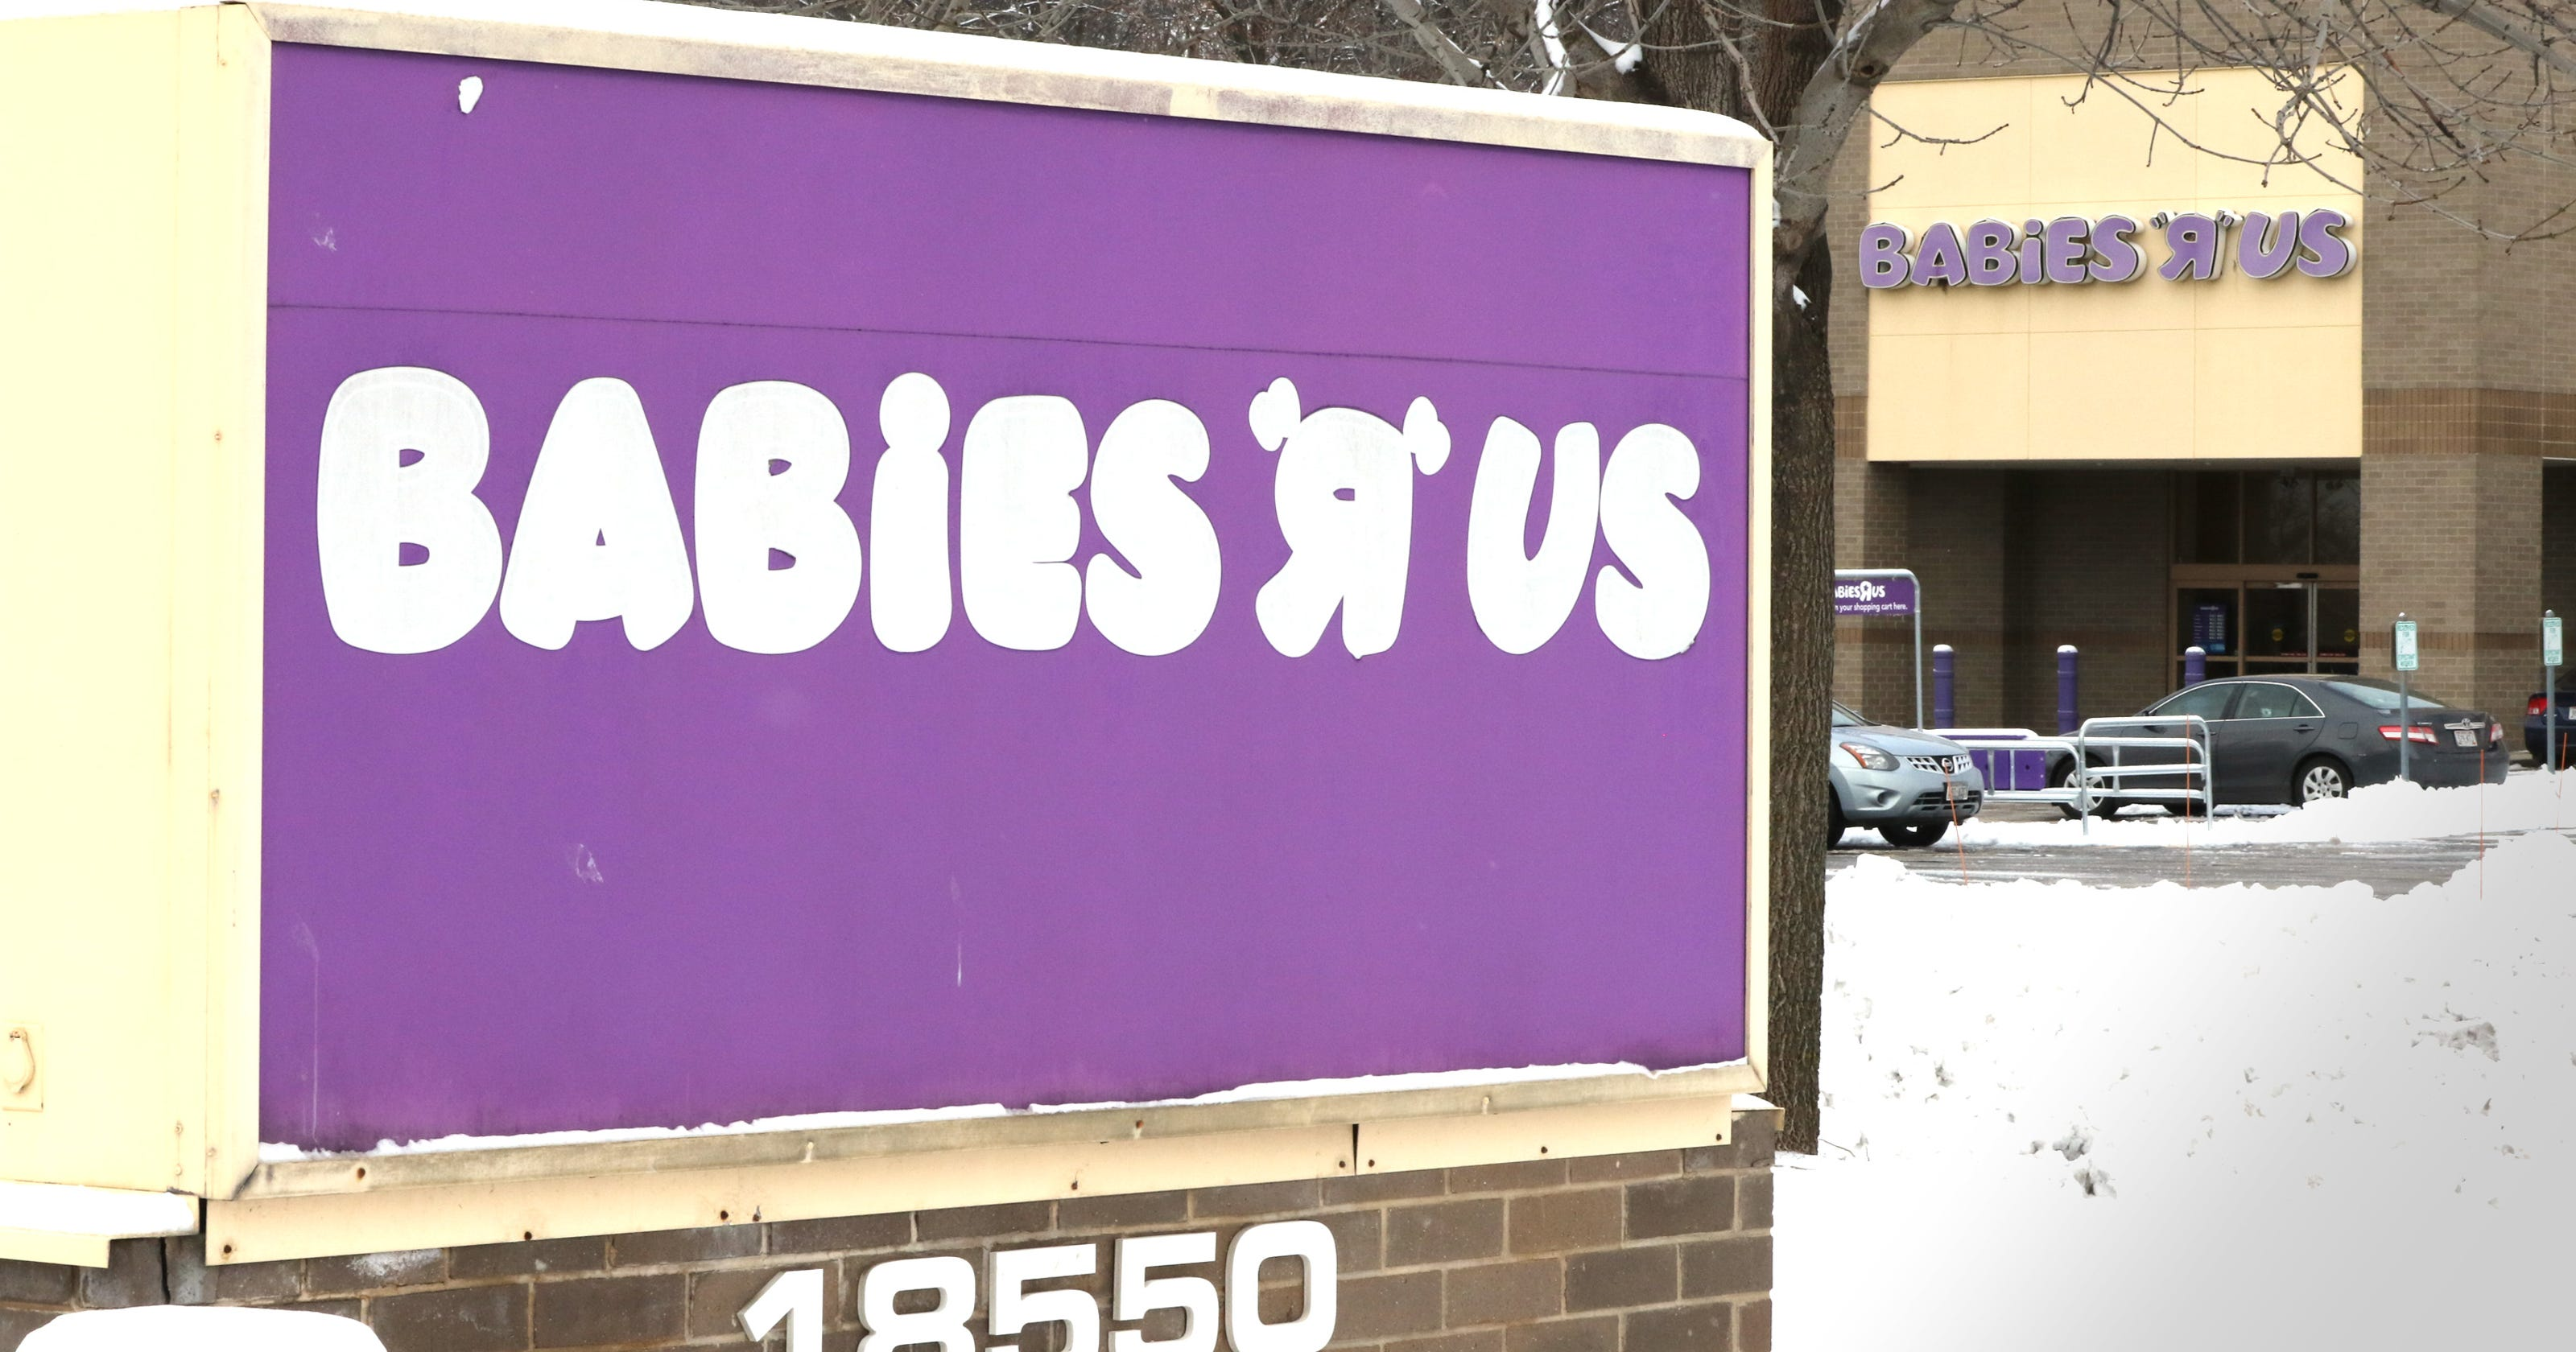 Babies R Us Closing At The End Of March Future Milwaukee Area Toys Stores Unclear